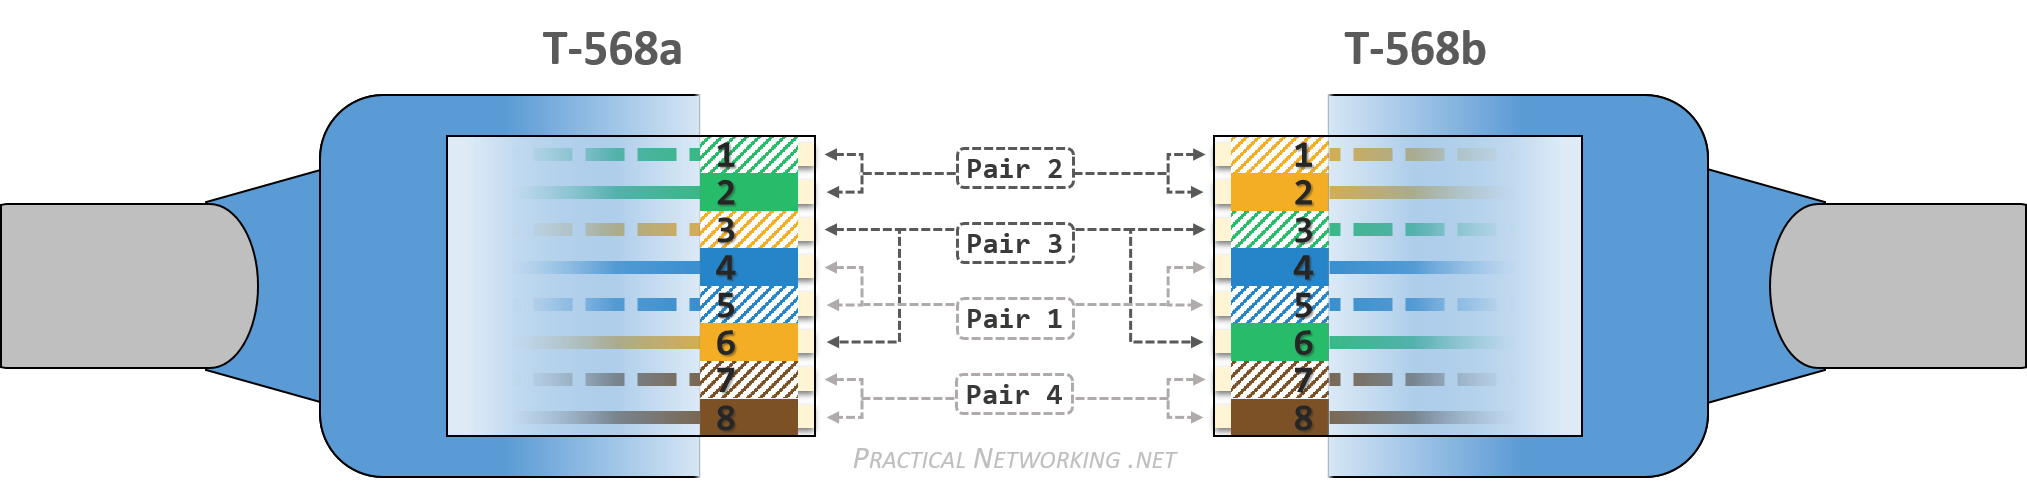 Ethernet Wiring Practical Networking Net Panel Diagram On Cat 5e Shielded Ether Cable T568a And T568b